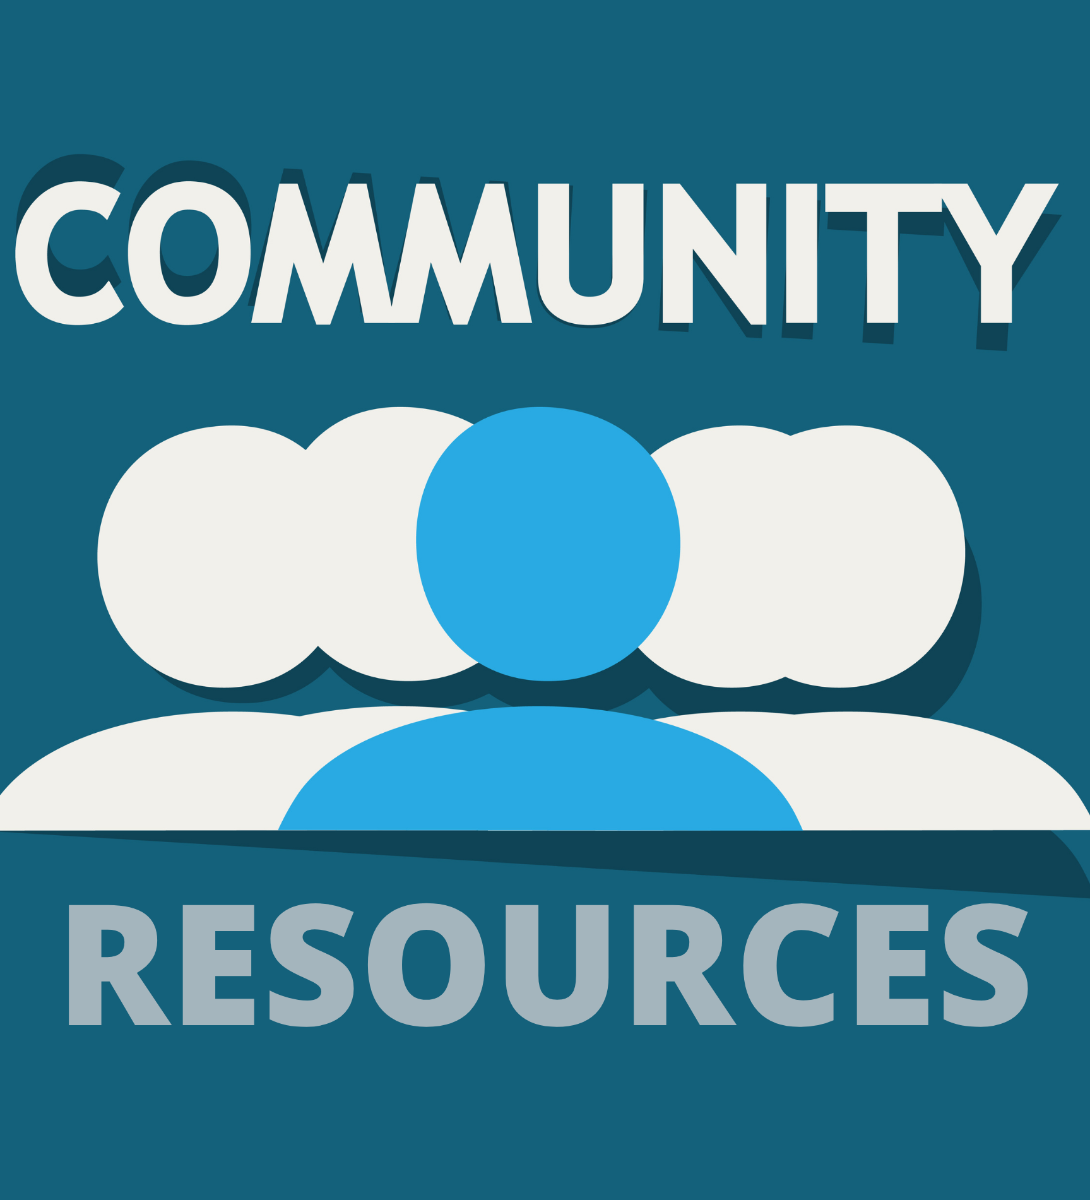 RESOURCES(1).png